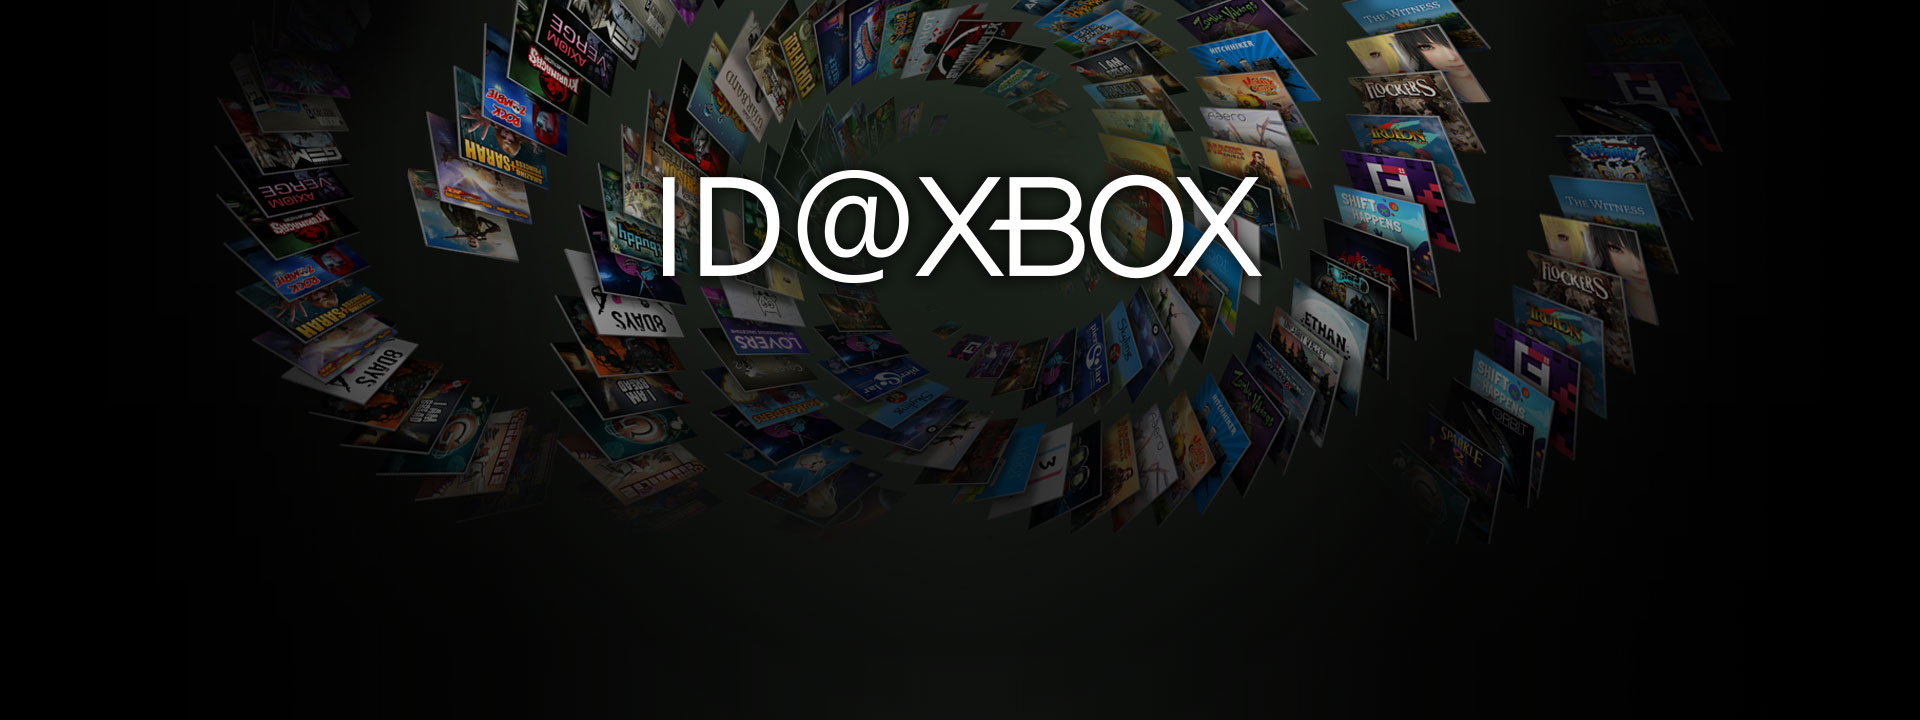 ID at Xbox logo infront of a collection of box shots from ID games